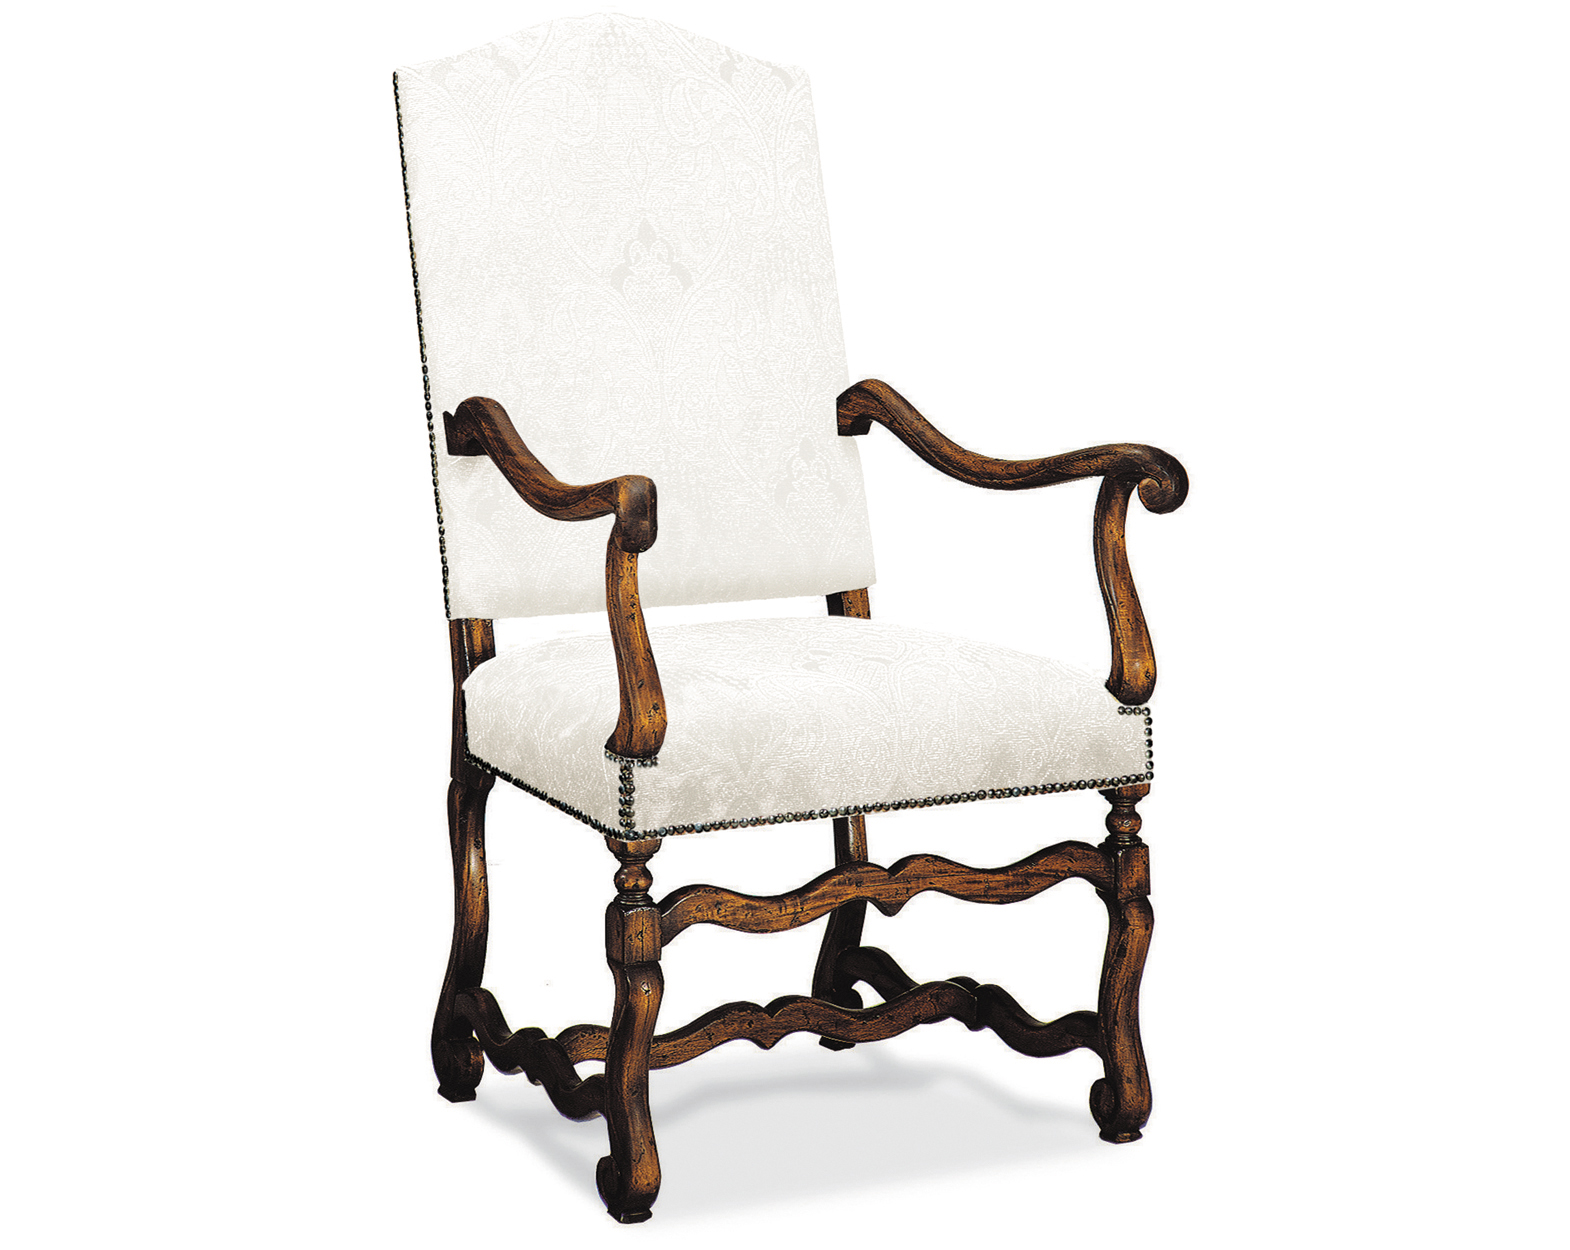 LOUIS XIII GALLATIN ARM CHAIR